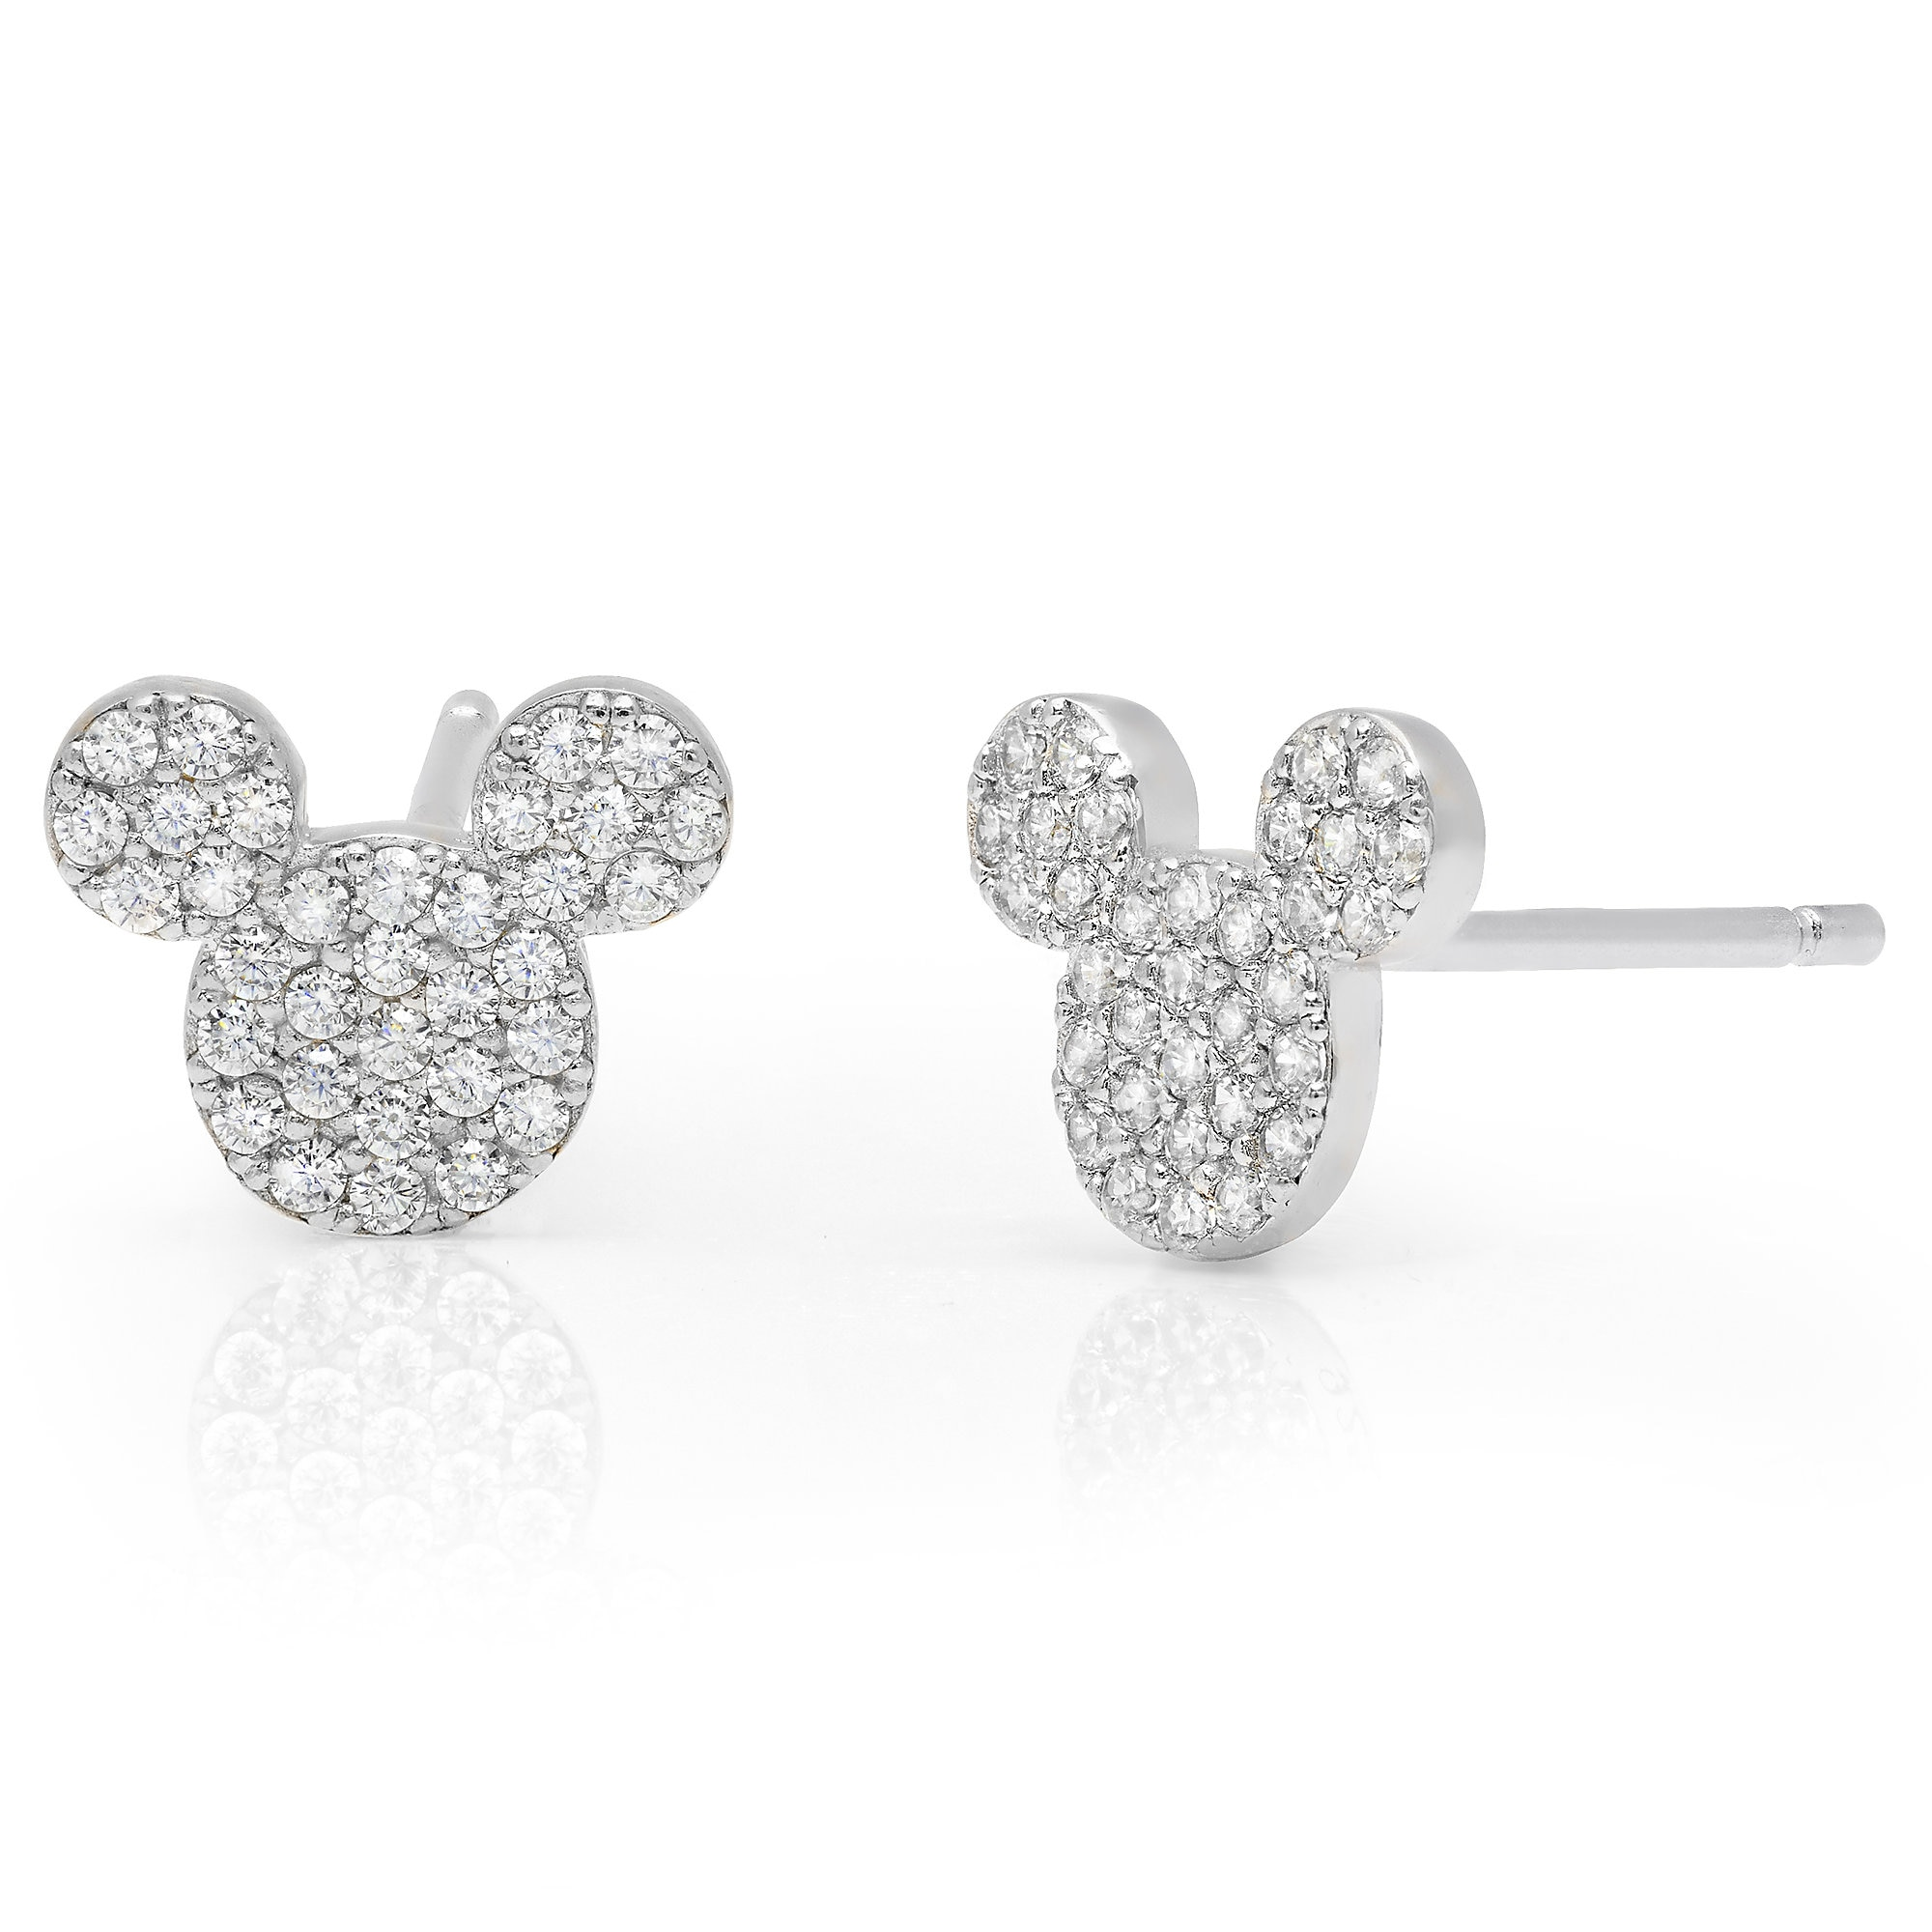 8950be132 Mickey Mouse Icon Stud Earrings by CRISLU - Platinum | shopDisney